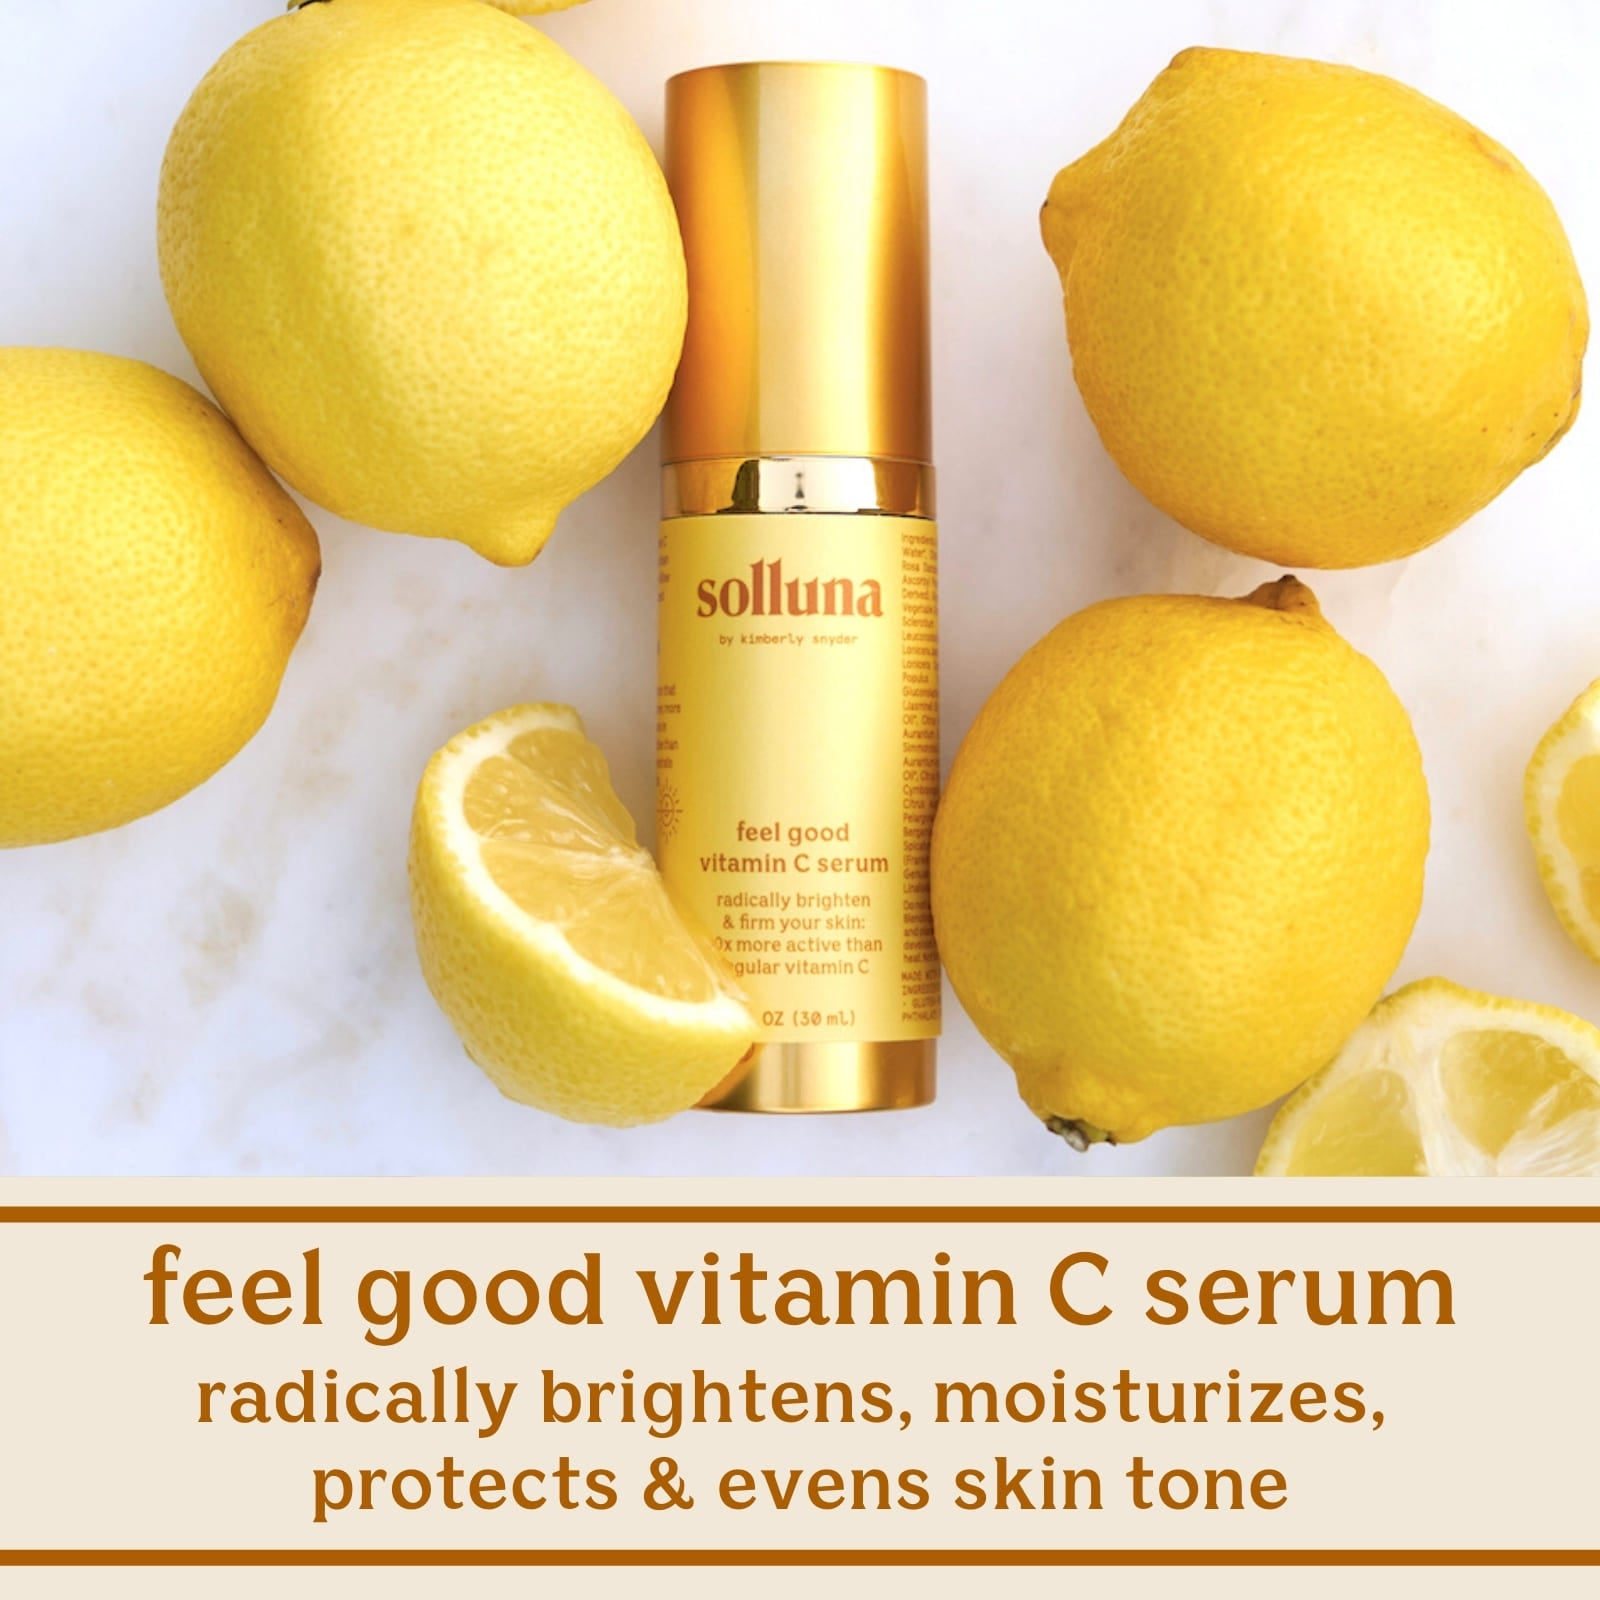 Solluna's Feel Good Vitamin C Serum Radically Brightens, Moisturizes, Protects & Evens Skin Tone